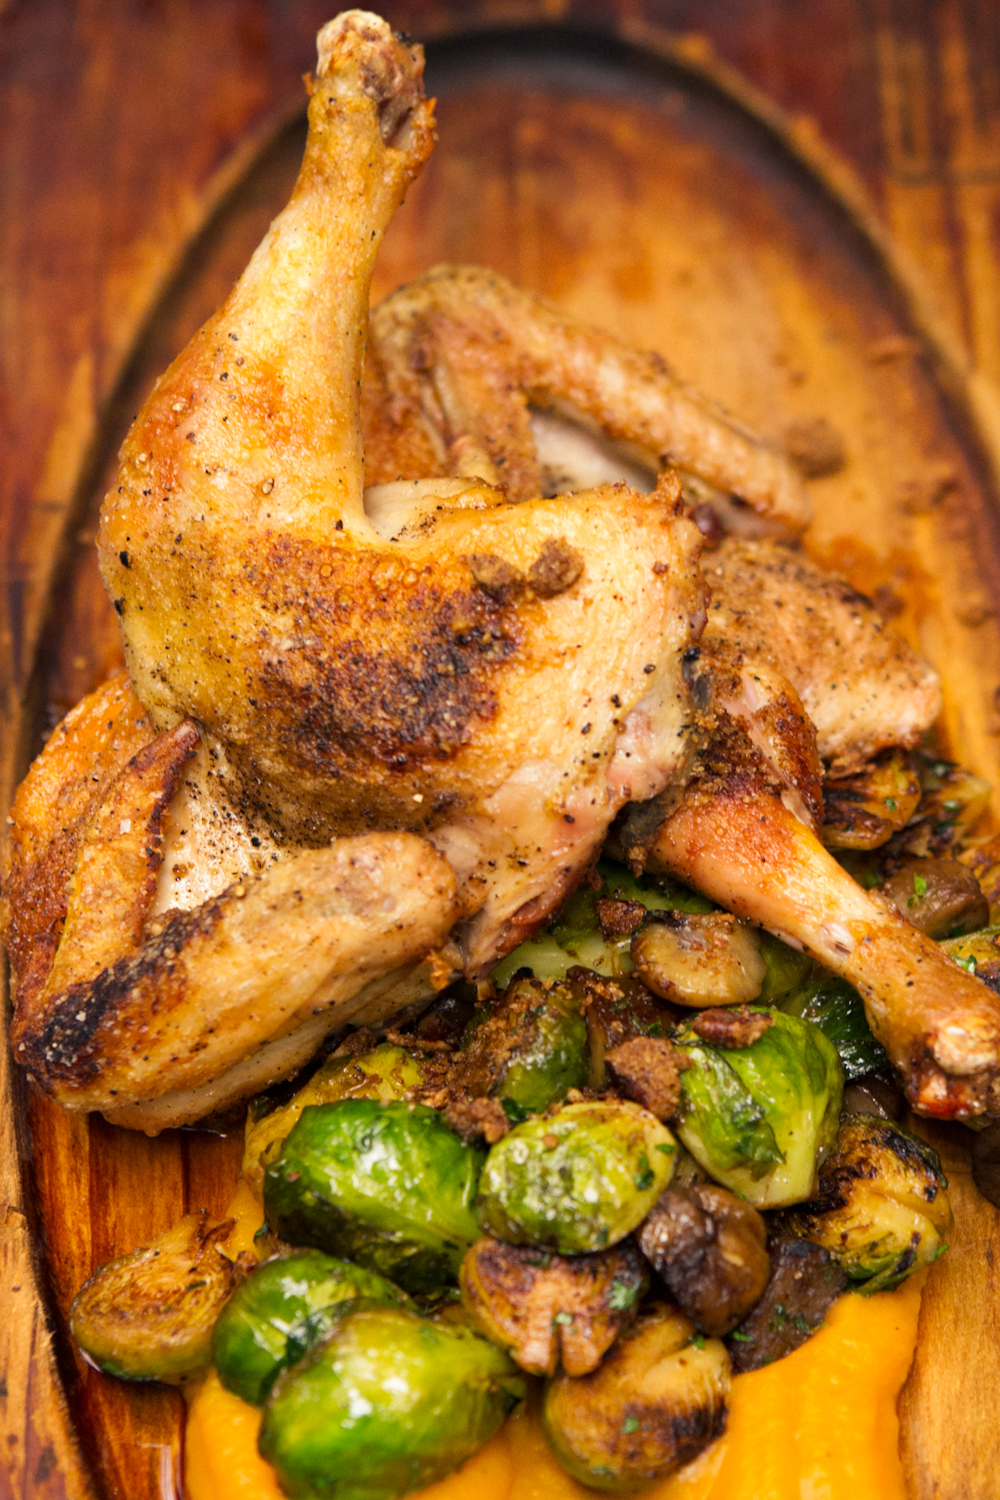 Roasted half chicken with glazed brussel sprouts and sweet potato puree.